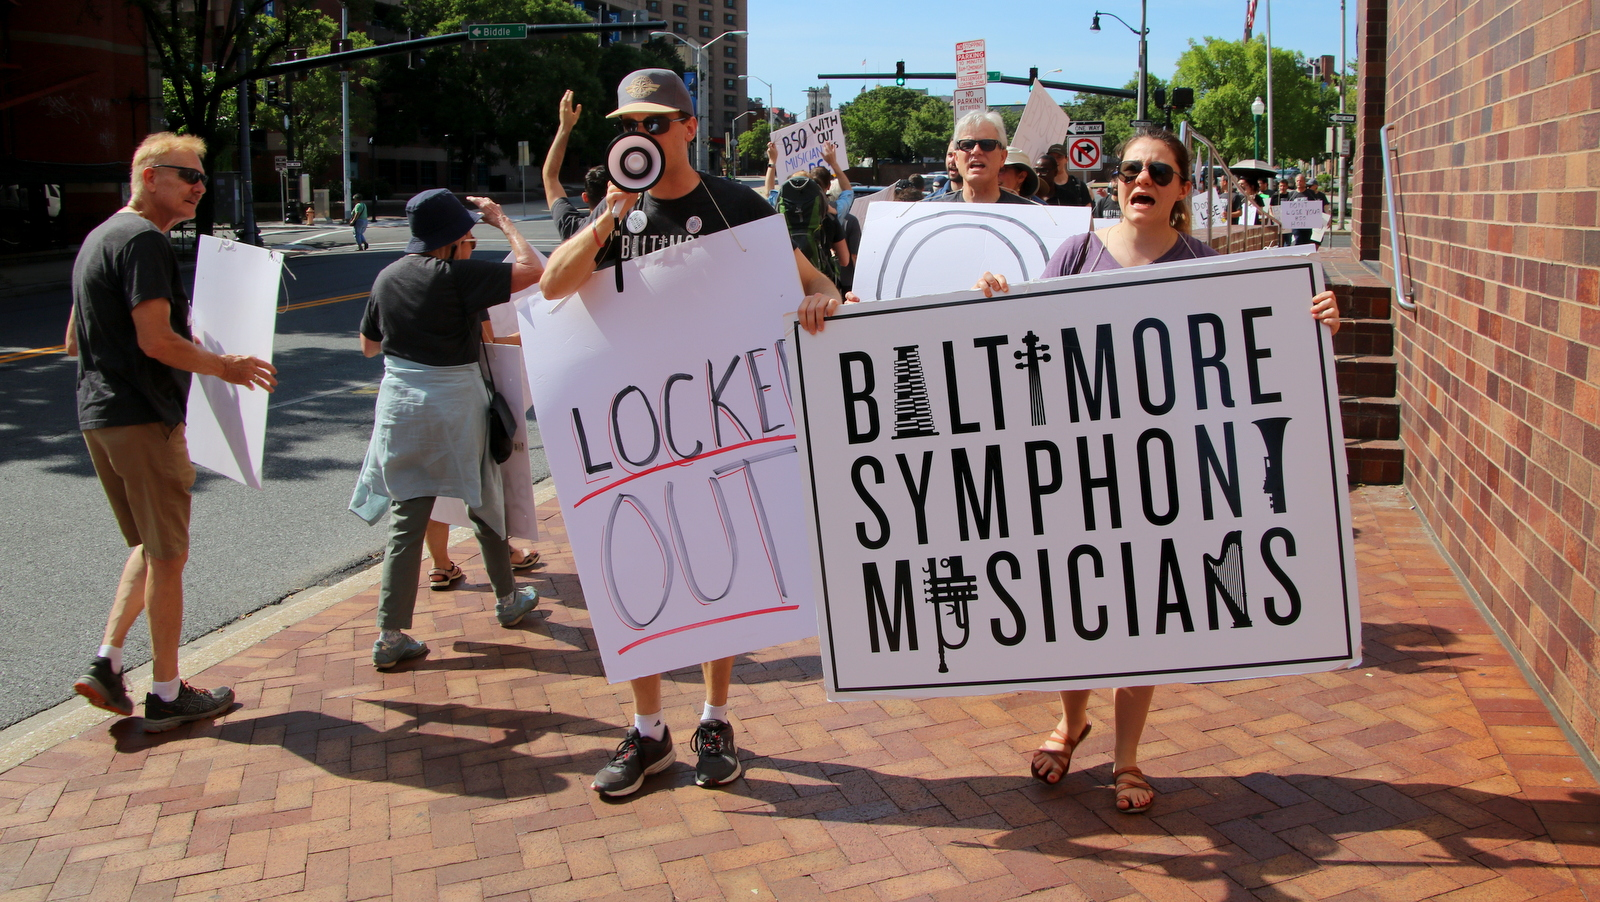 The morning after management announced a lockout, Baltimore Symphony musicians take to the street. (Fern Shen)